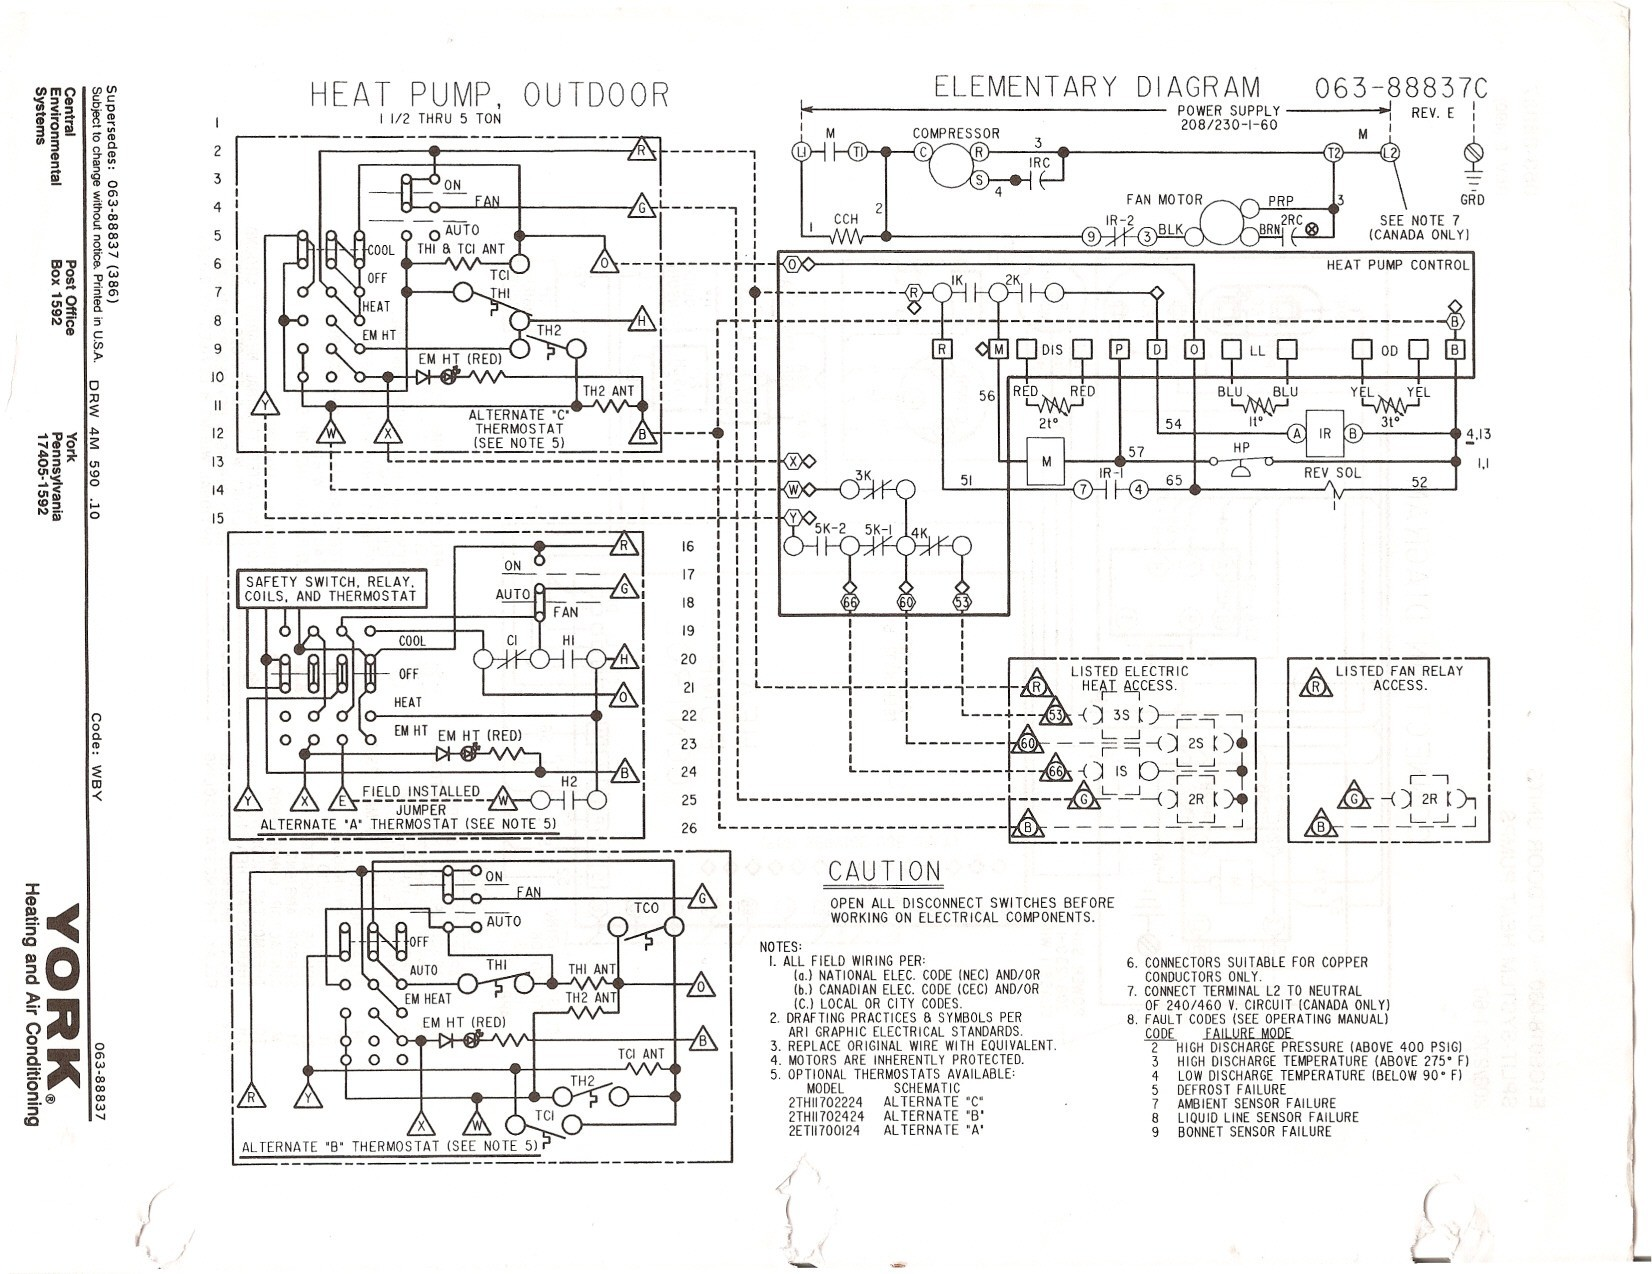 goodman heat pump wiring diagram thermostat furnas drum switch my